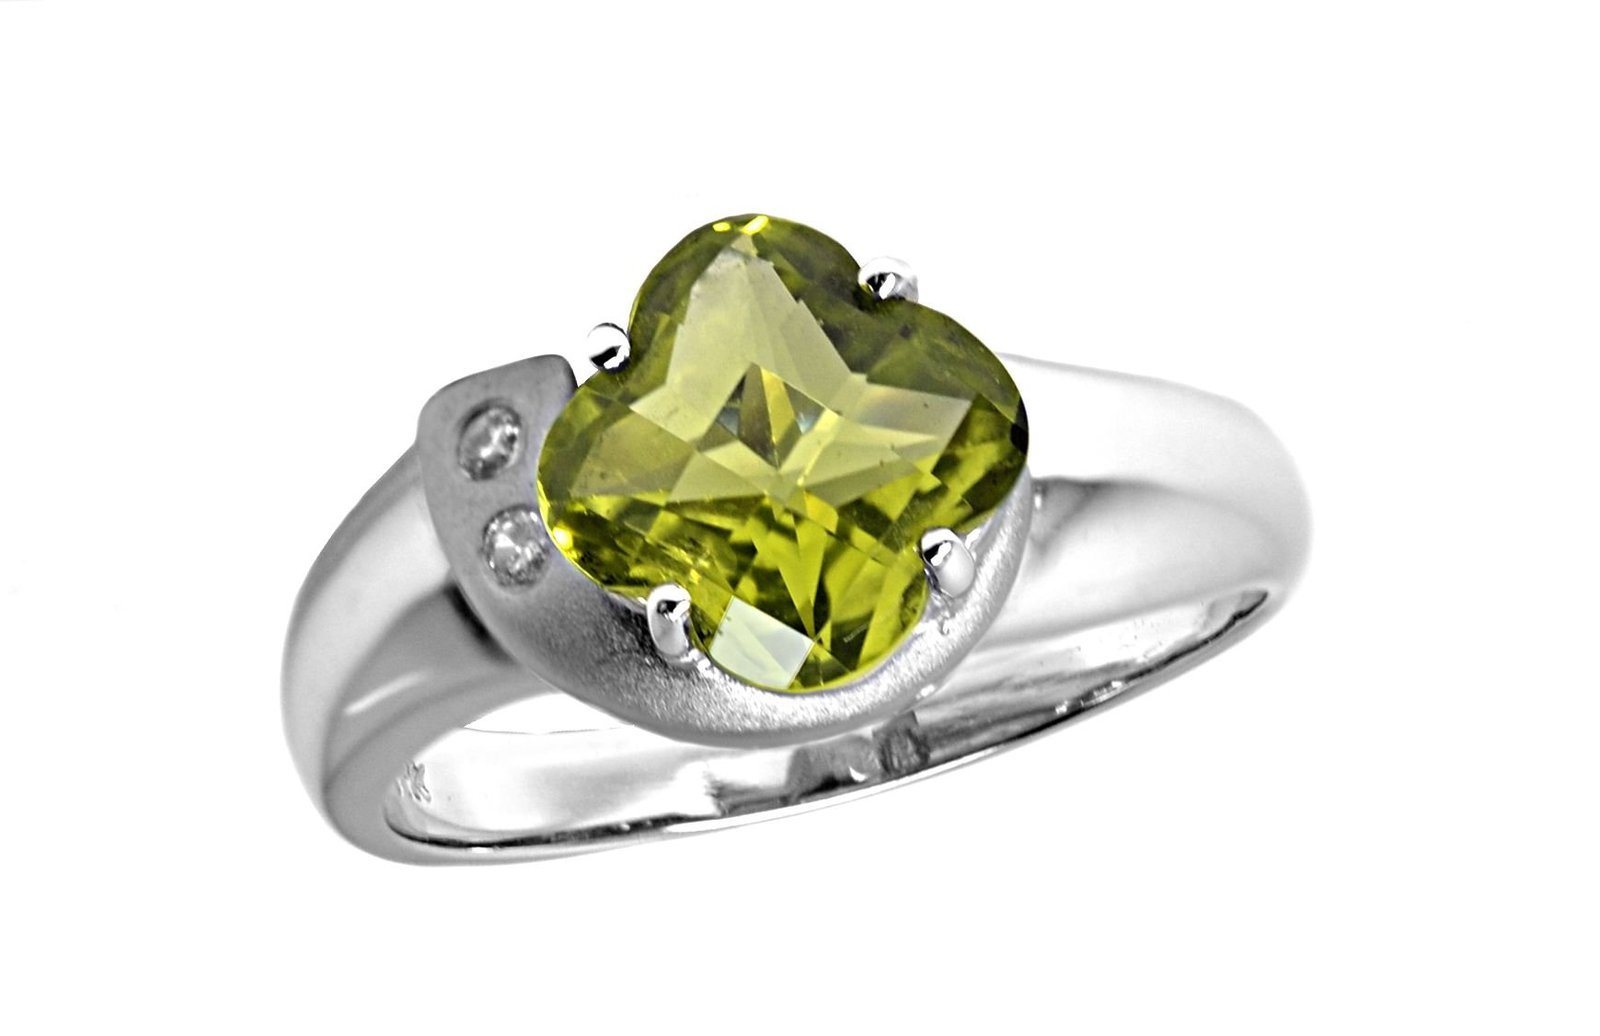 14K White Gold Genuine Fancy Faceted Peridot Ring